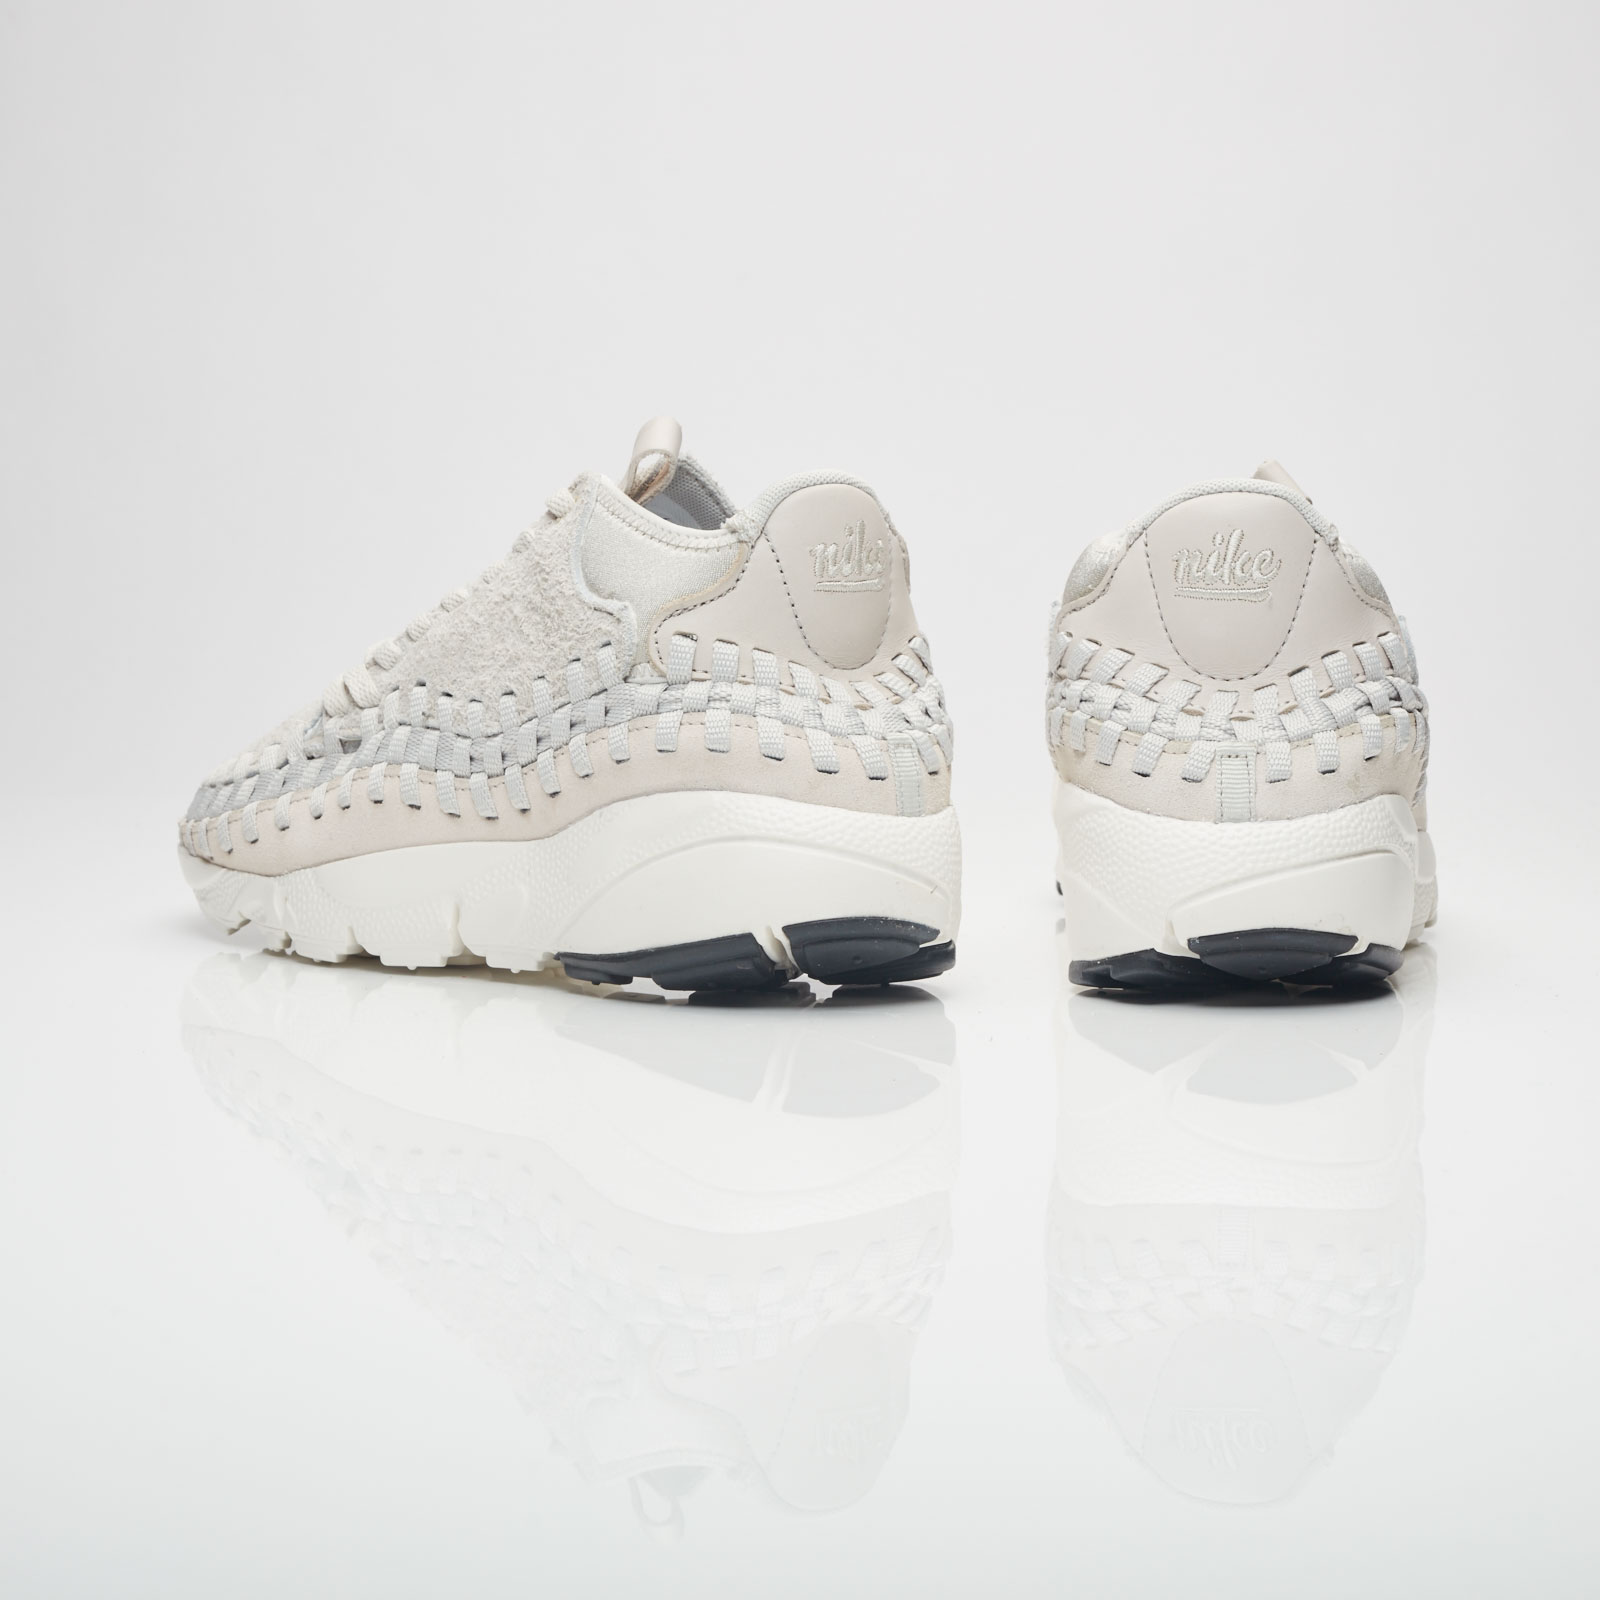 newest c95cd 129c4 Nike Air Footscape Woven Chukka Qs - 913929-002 - Sneakersnstuff   sneakers    streetwear online since 1999